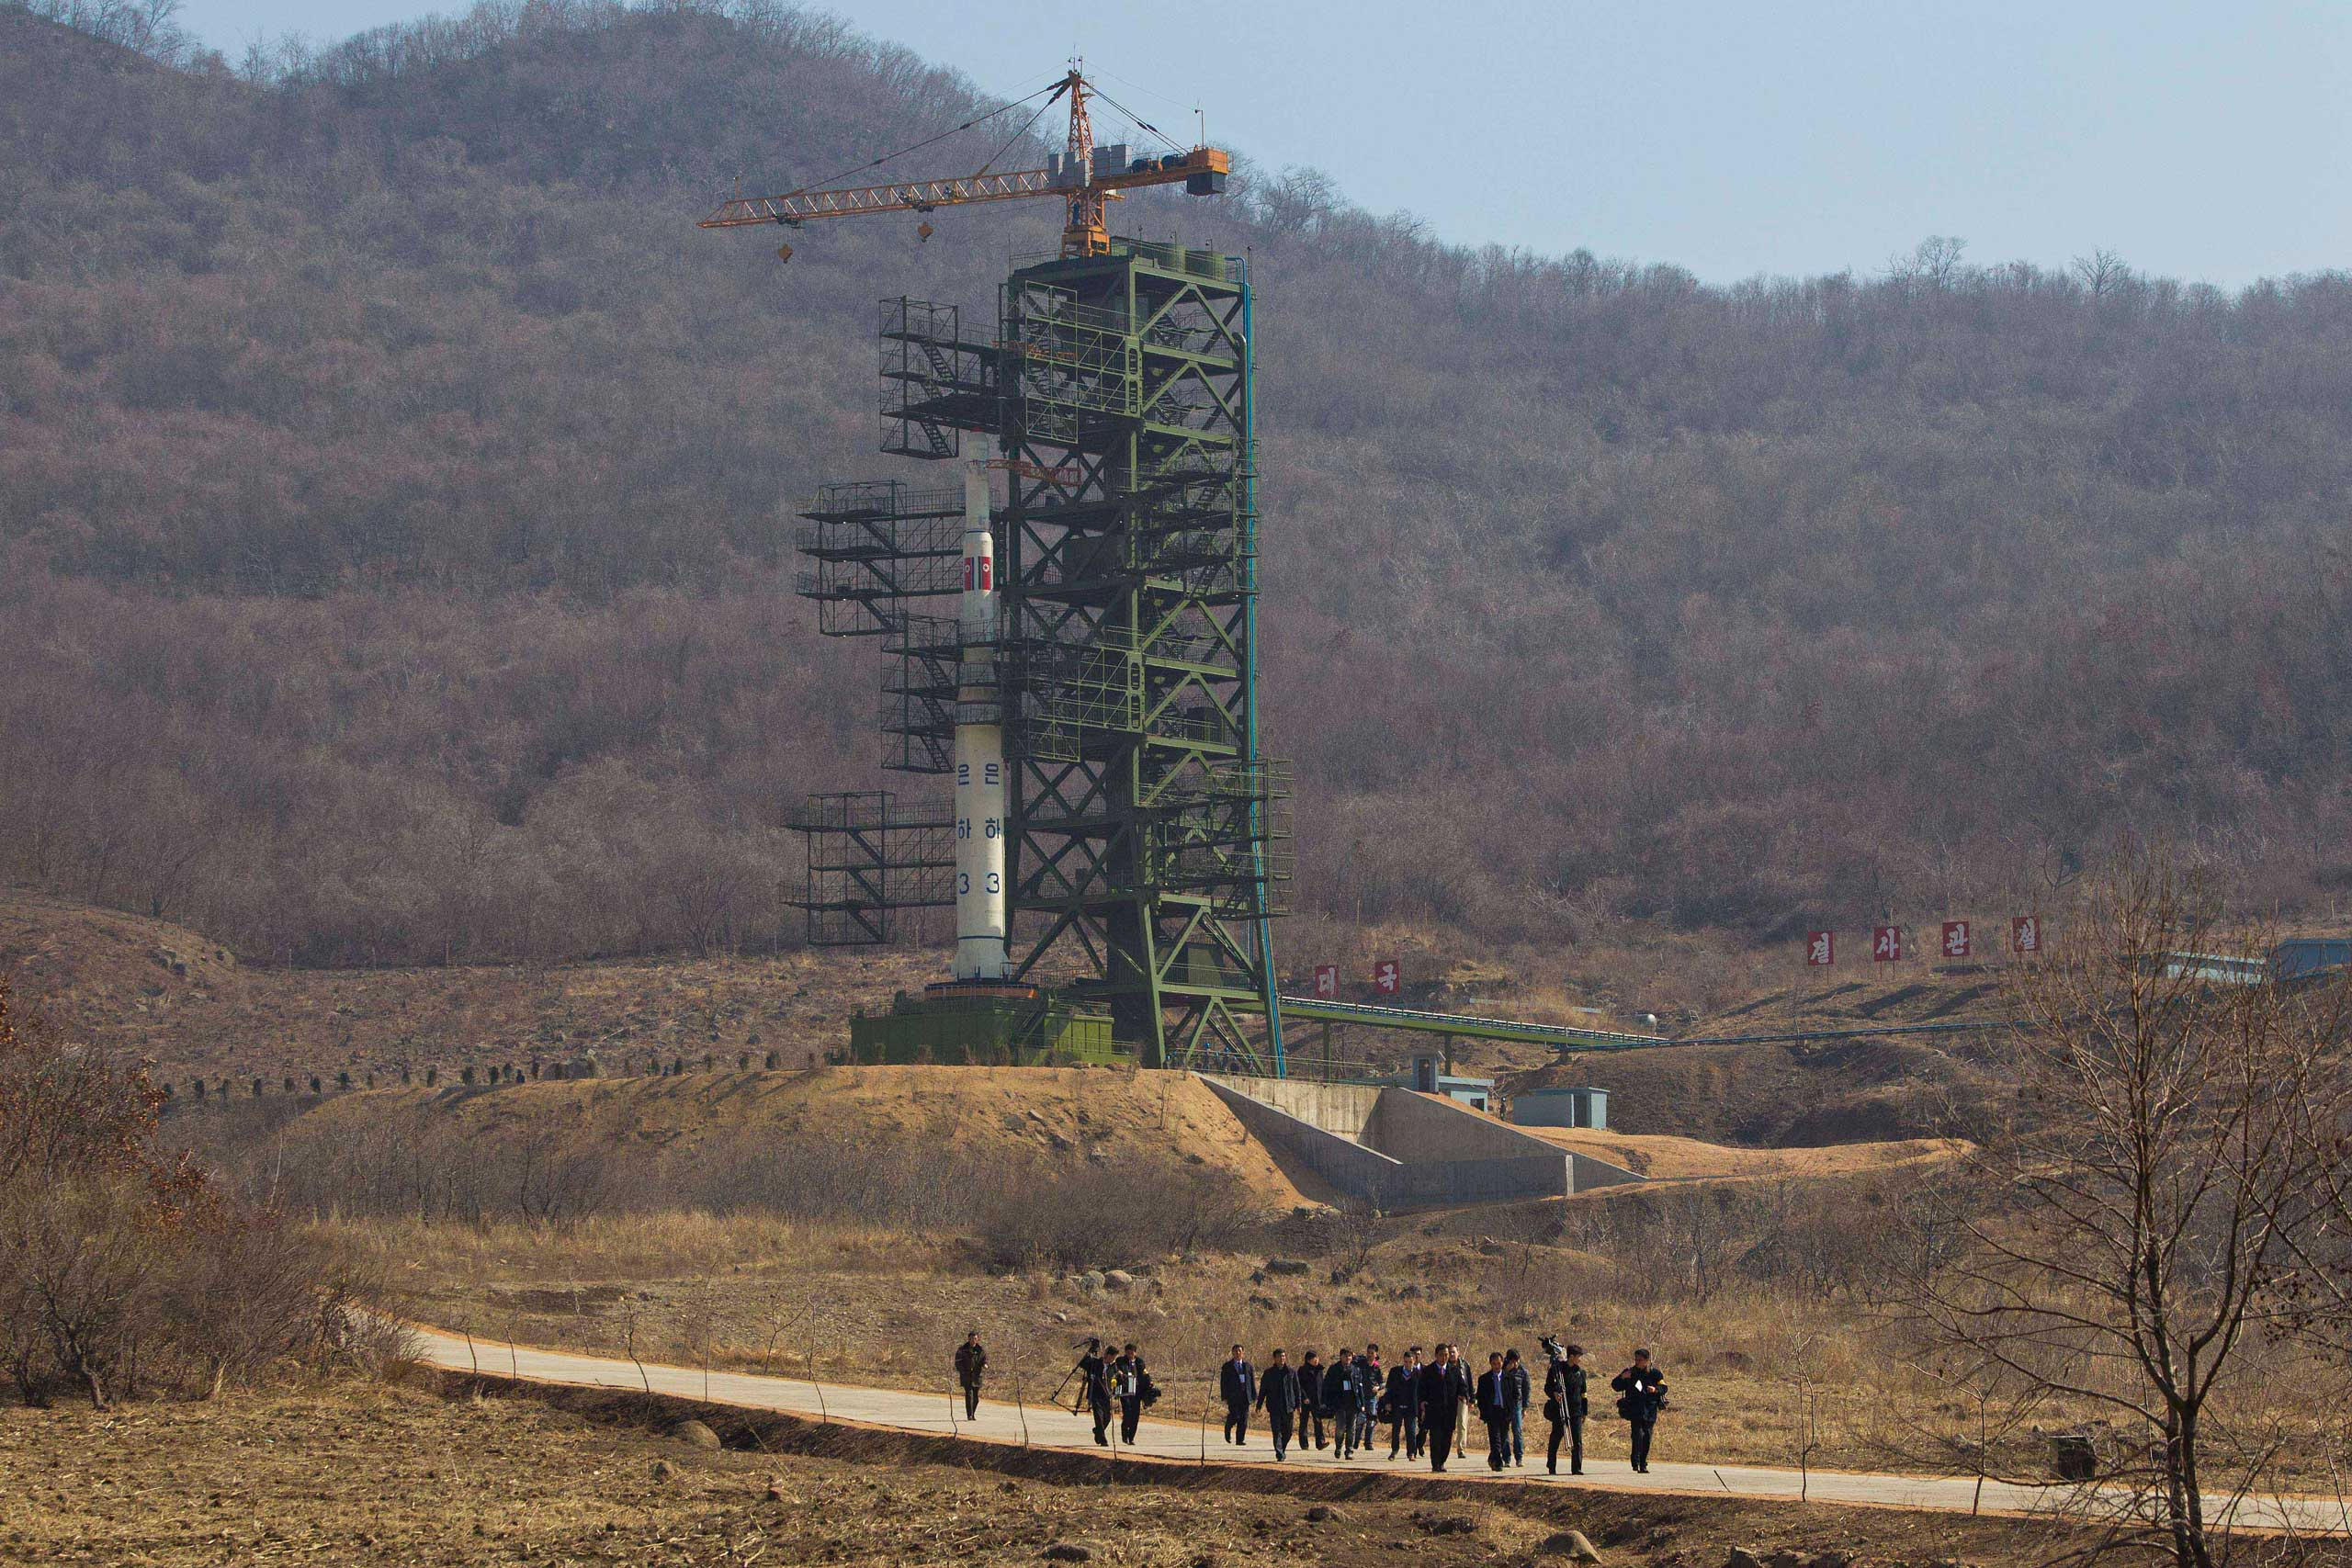 April 8, 2012. A group of journalists walk down a road in front of North Korea's Unha-3 rocket, slated for liftoff at Sohae Satellite Station.